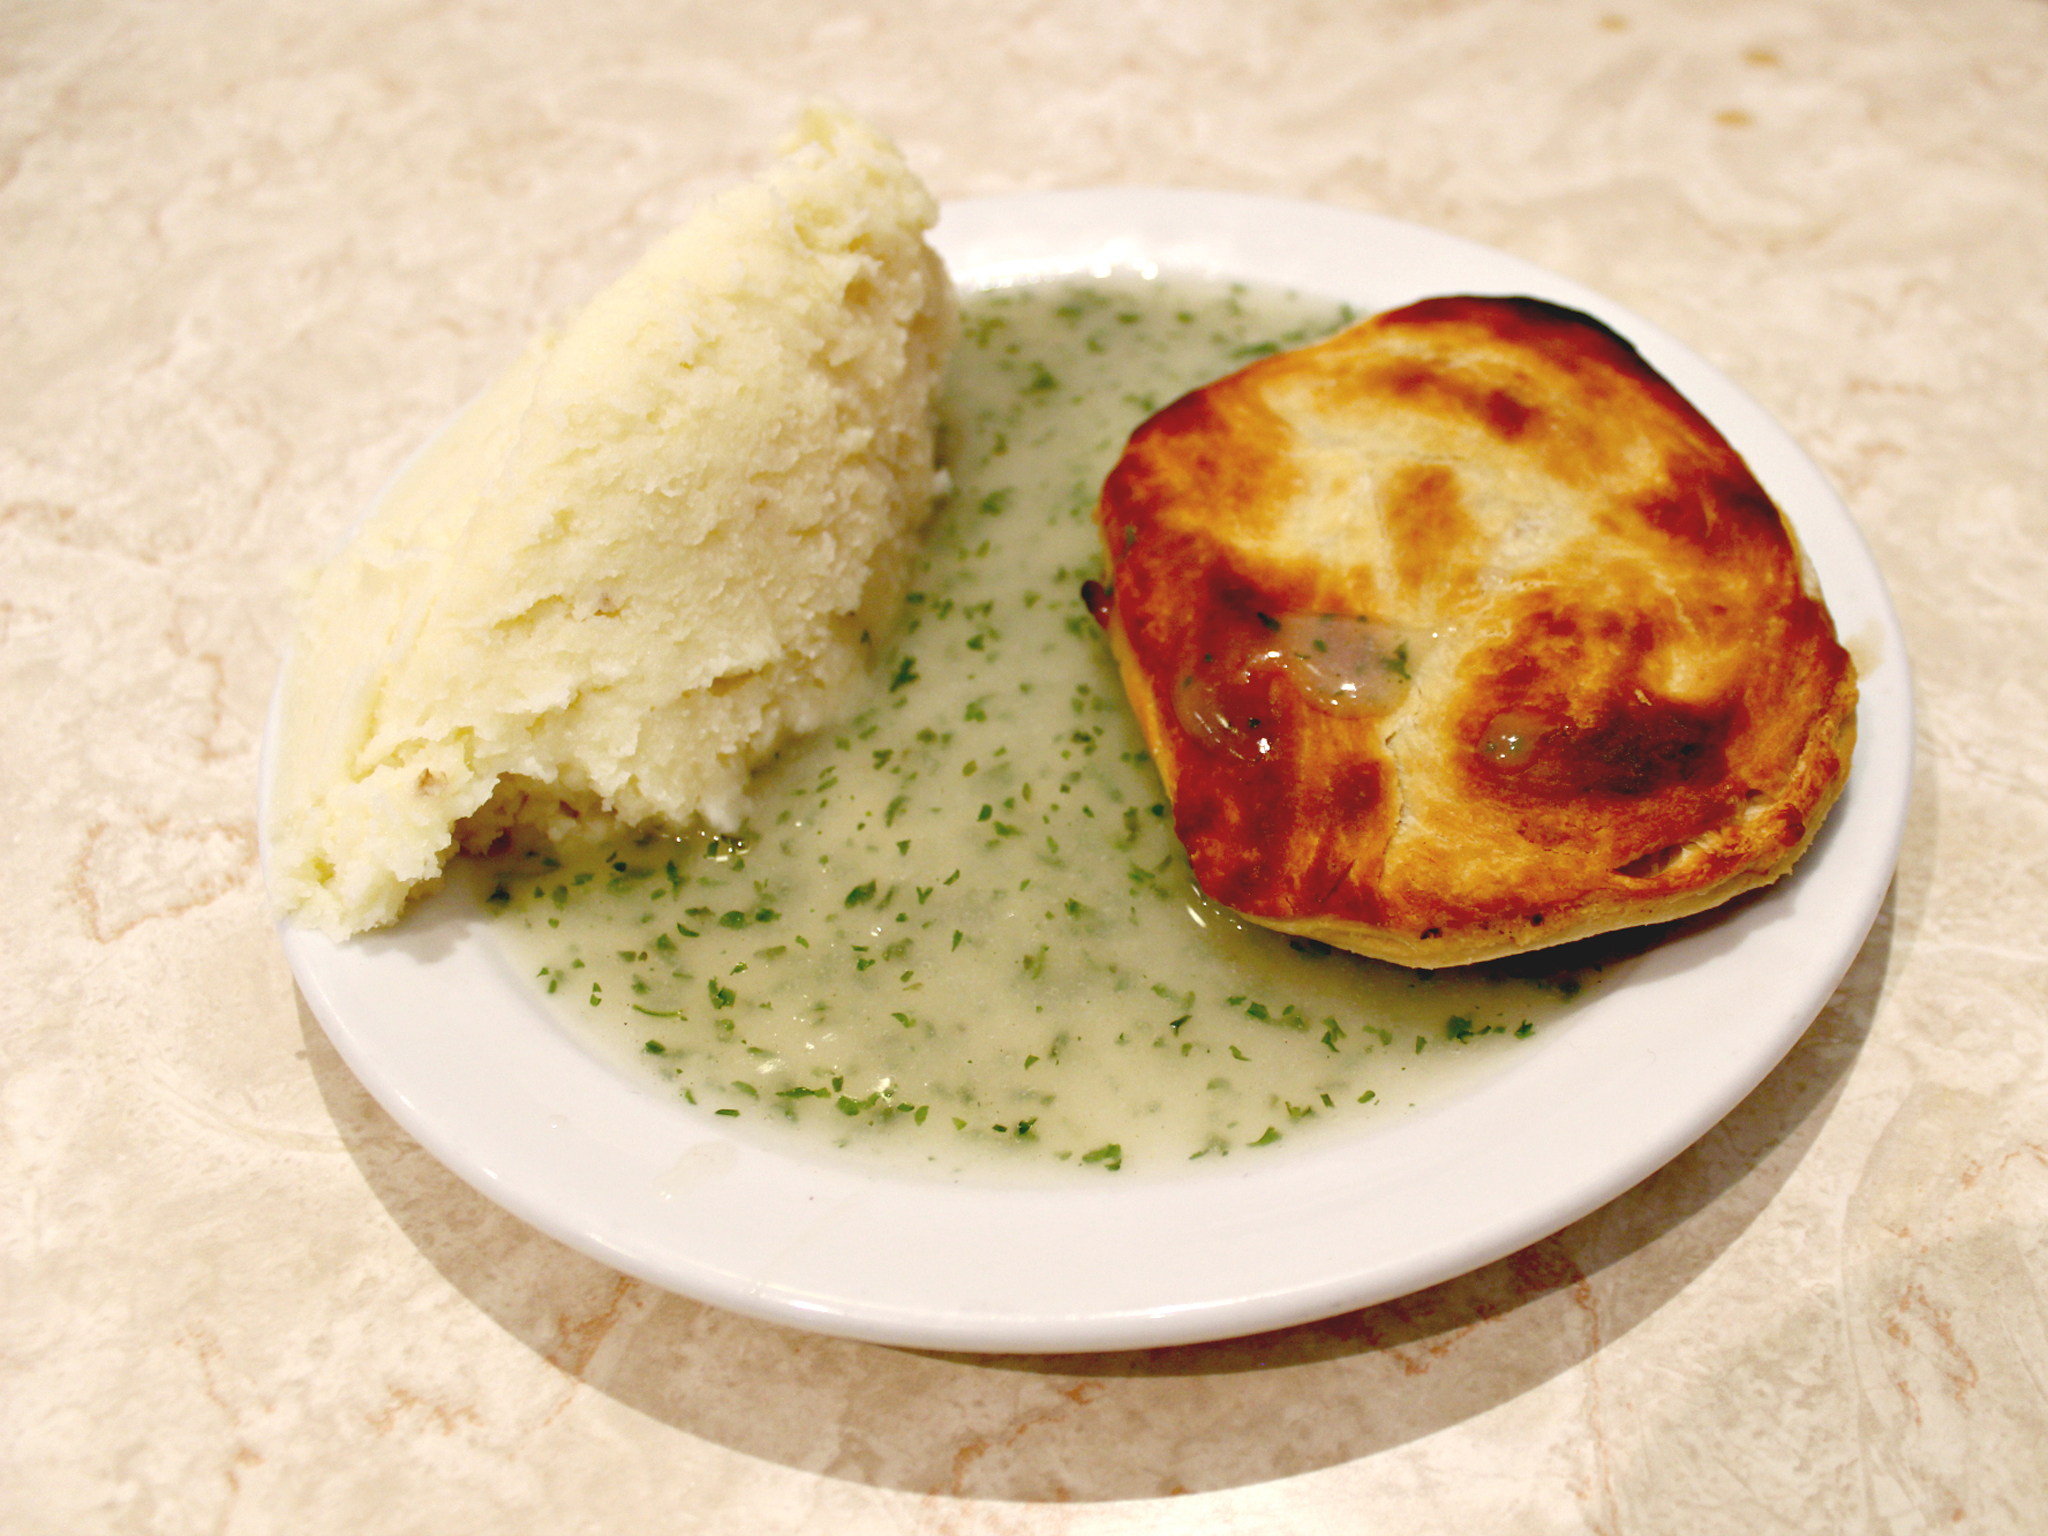 London's best pie and mash shops, G Kelly Roman Road